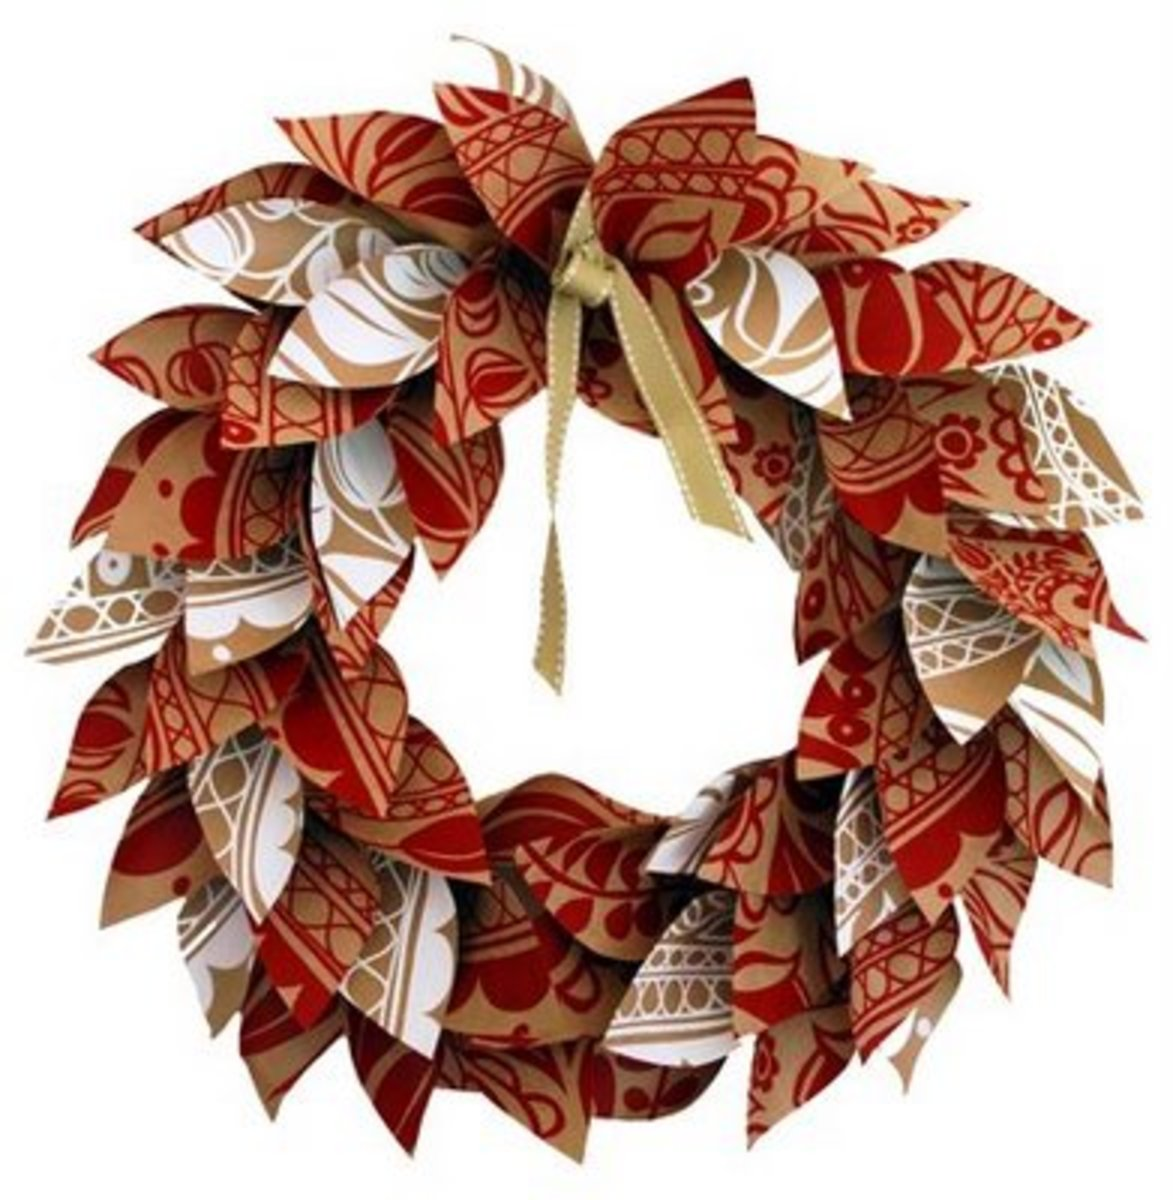 Paper Christmas Wreath         theredthreadblog.blogspot.com